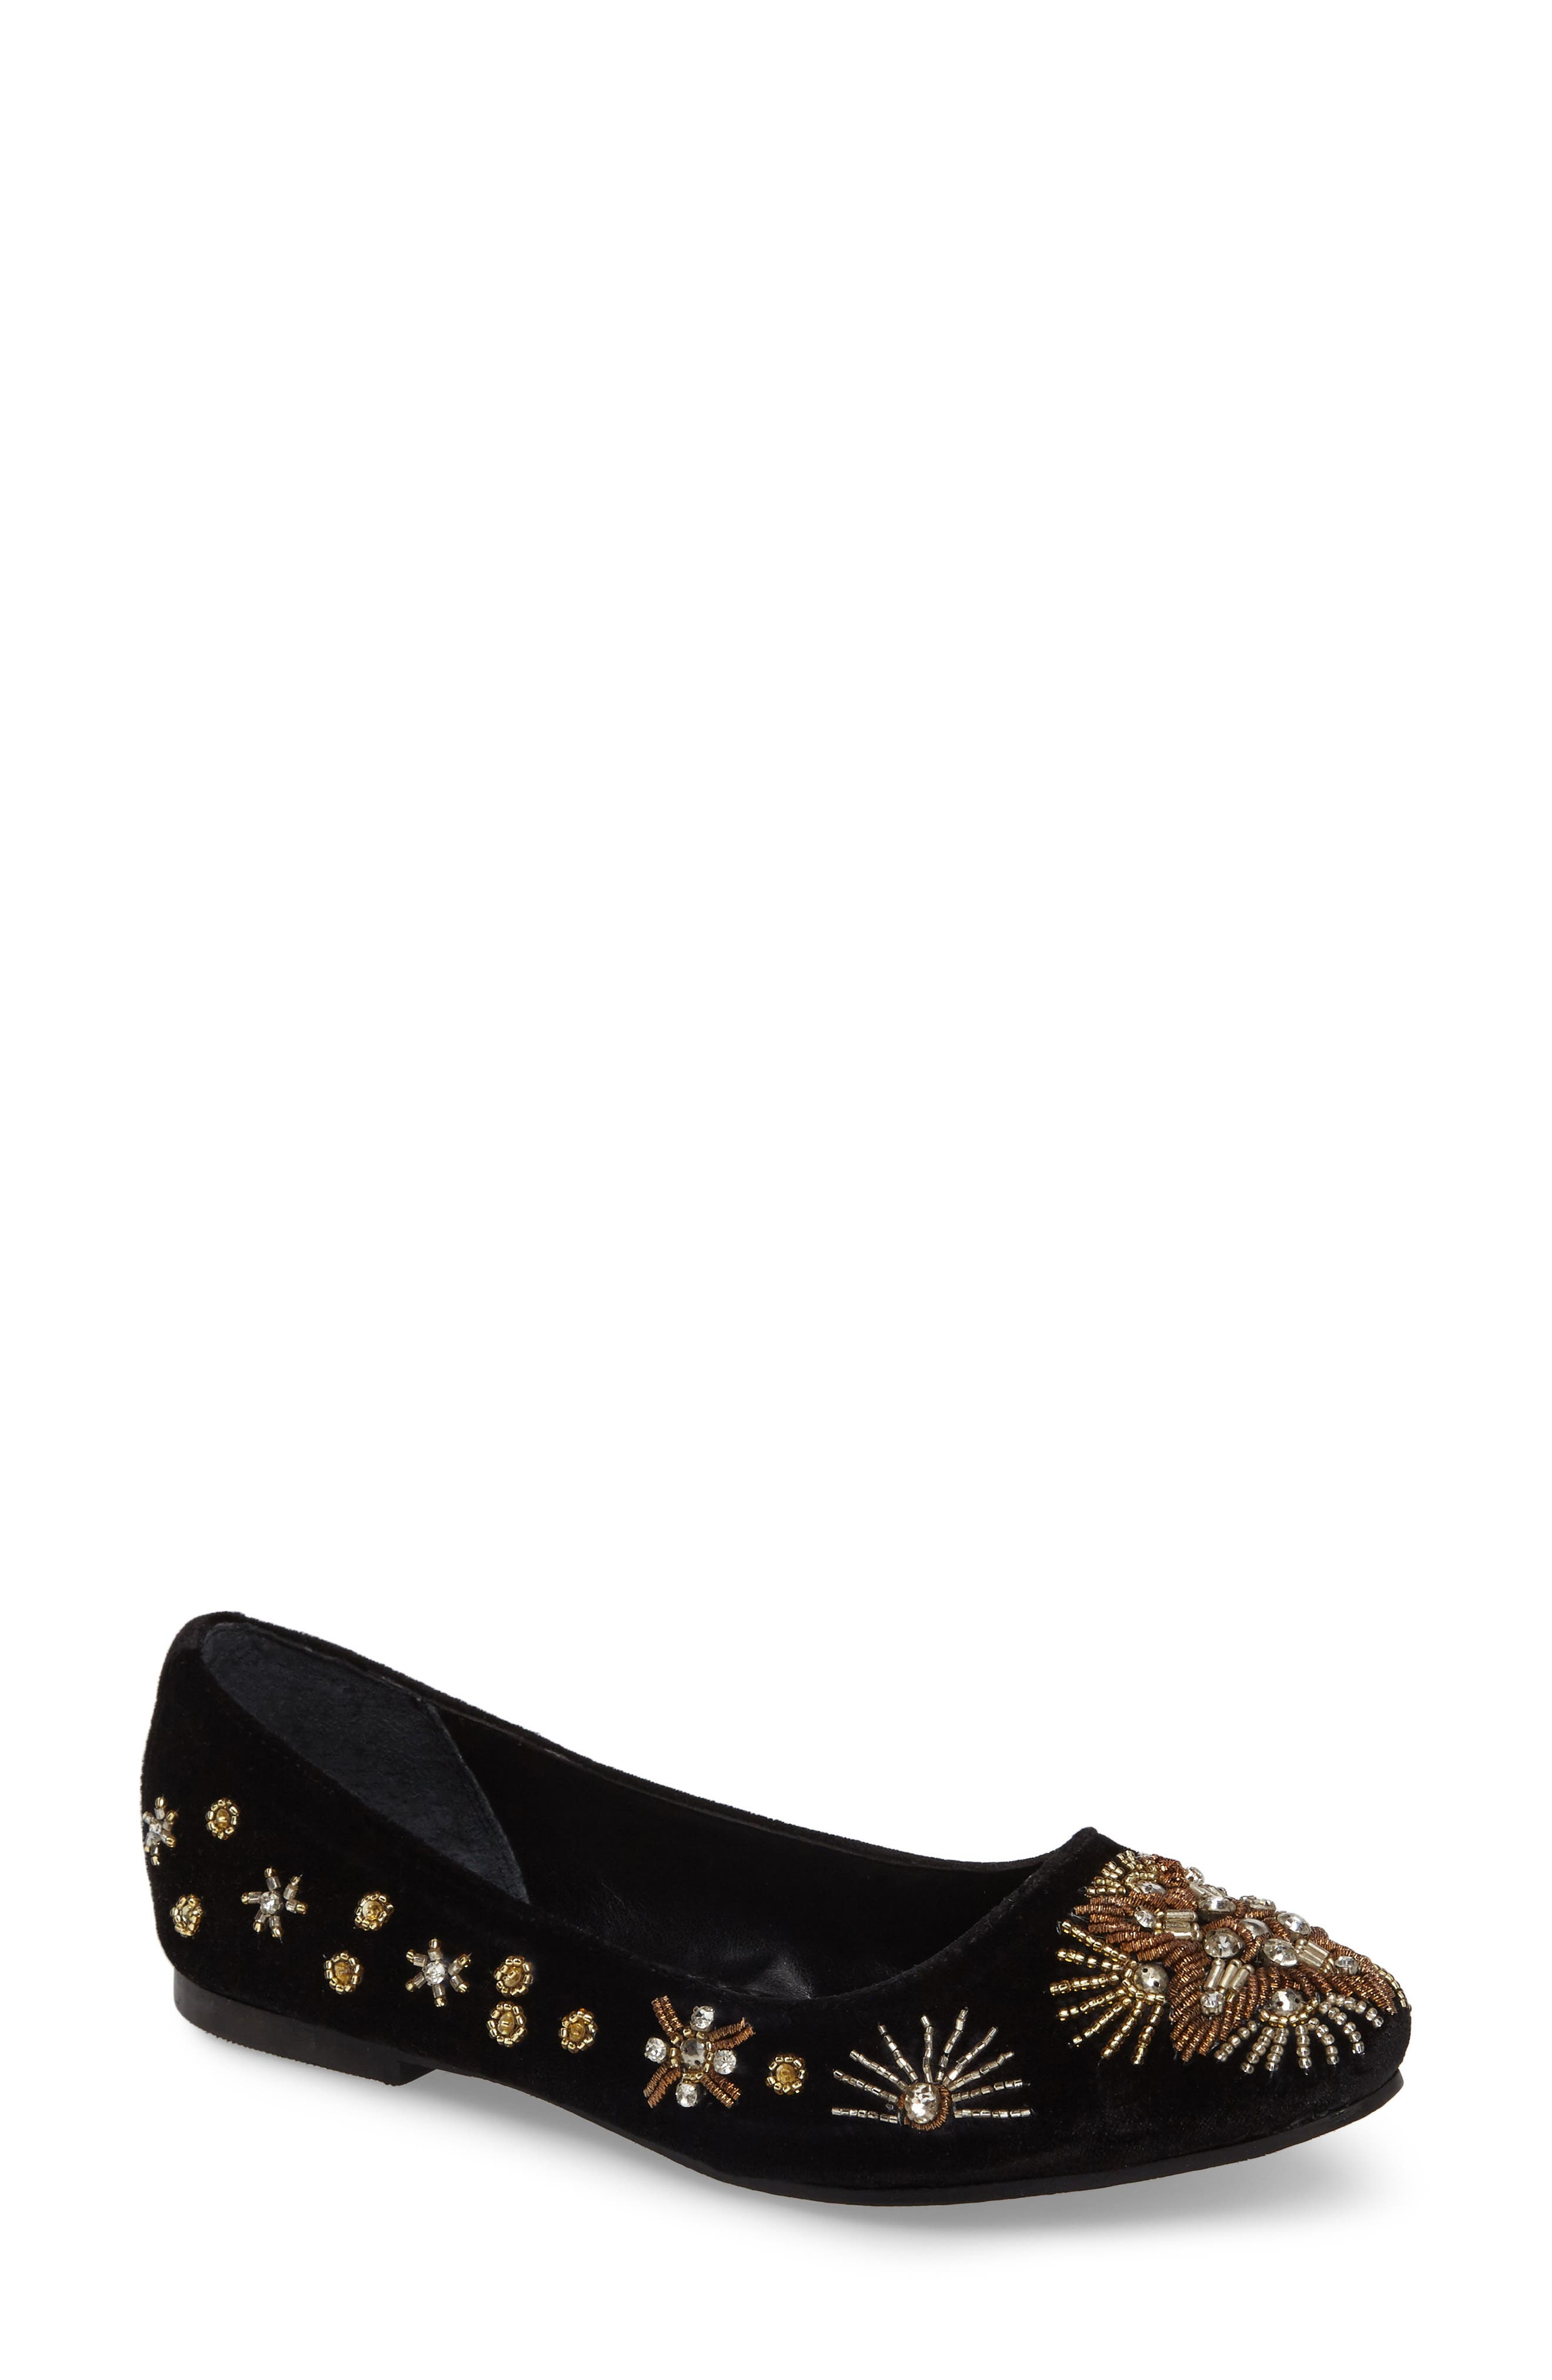 Labonge Embellished Flat,                         Main,                         color, 001